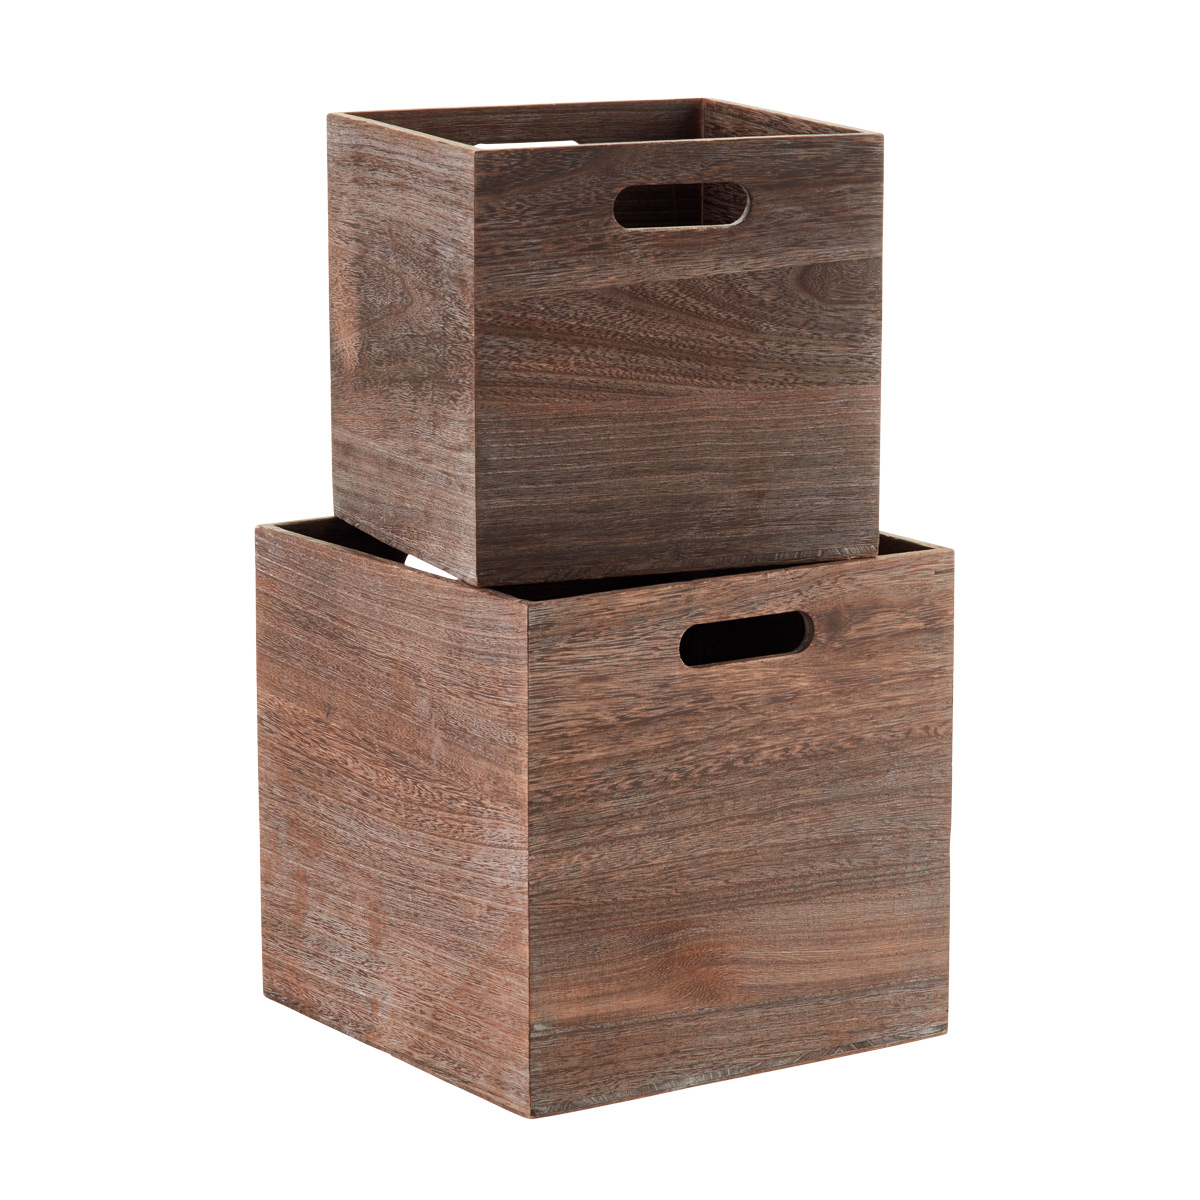 Feathergrain Wooden Storage Cubes With Handles